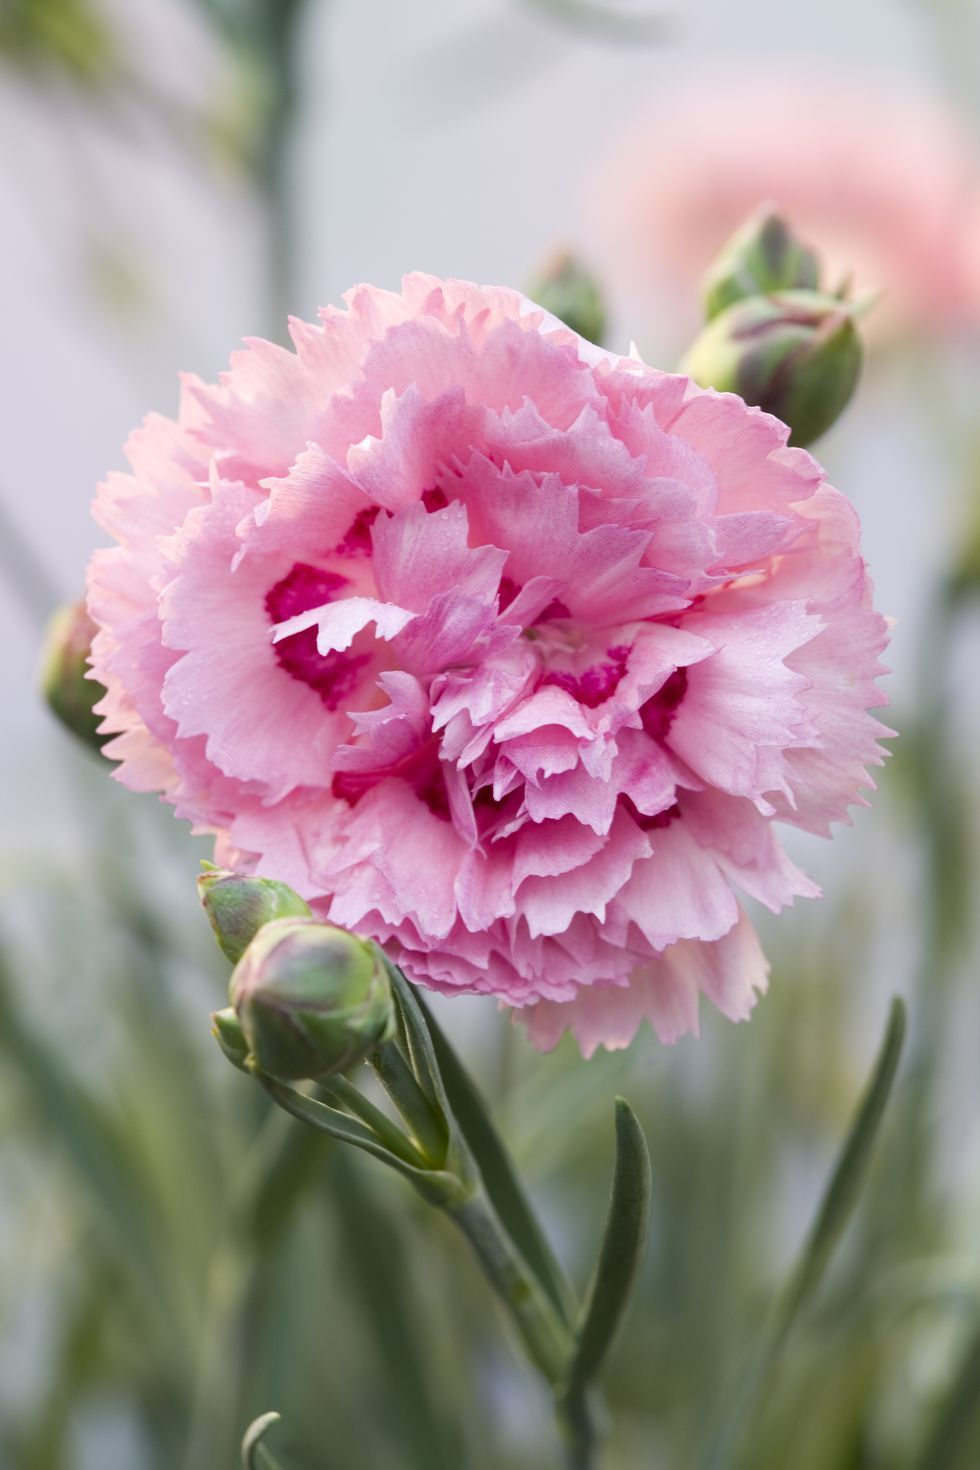 The Surprising Meanings Behind Your Favorite Flowers In 2020 Carnation Flower Flower Meanings Carnation Flower Meaning